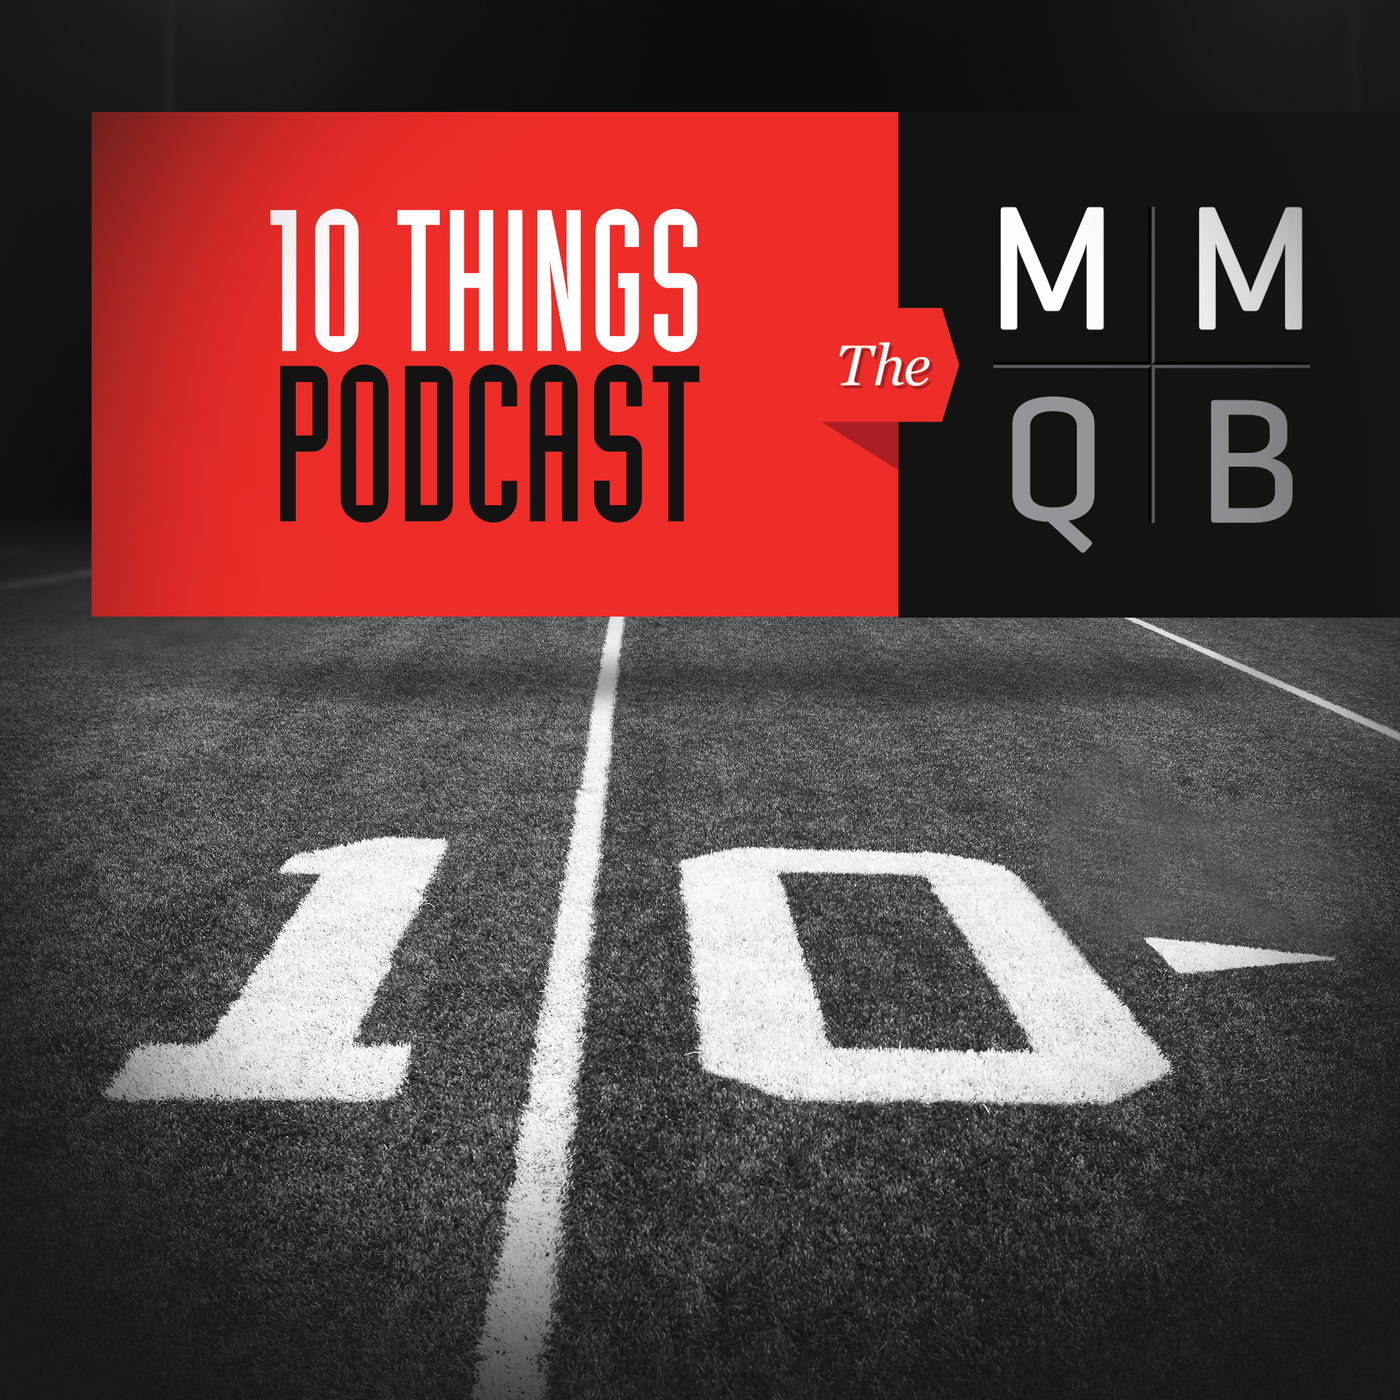 The MMQB: 10 Things